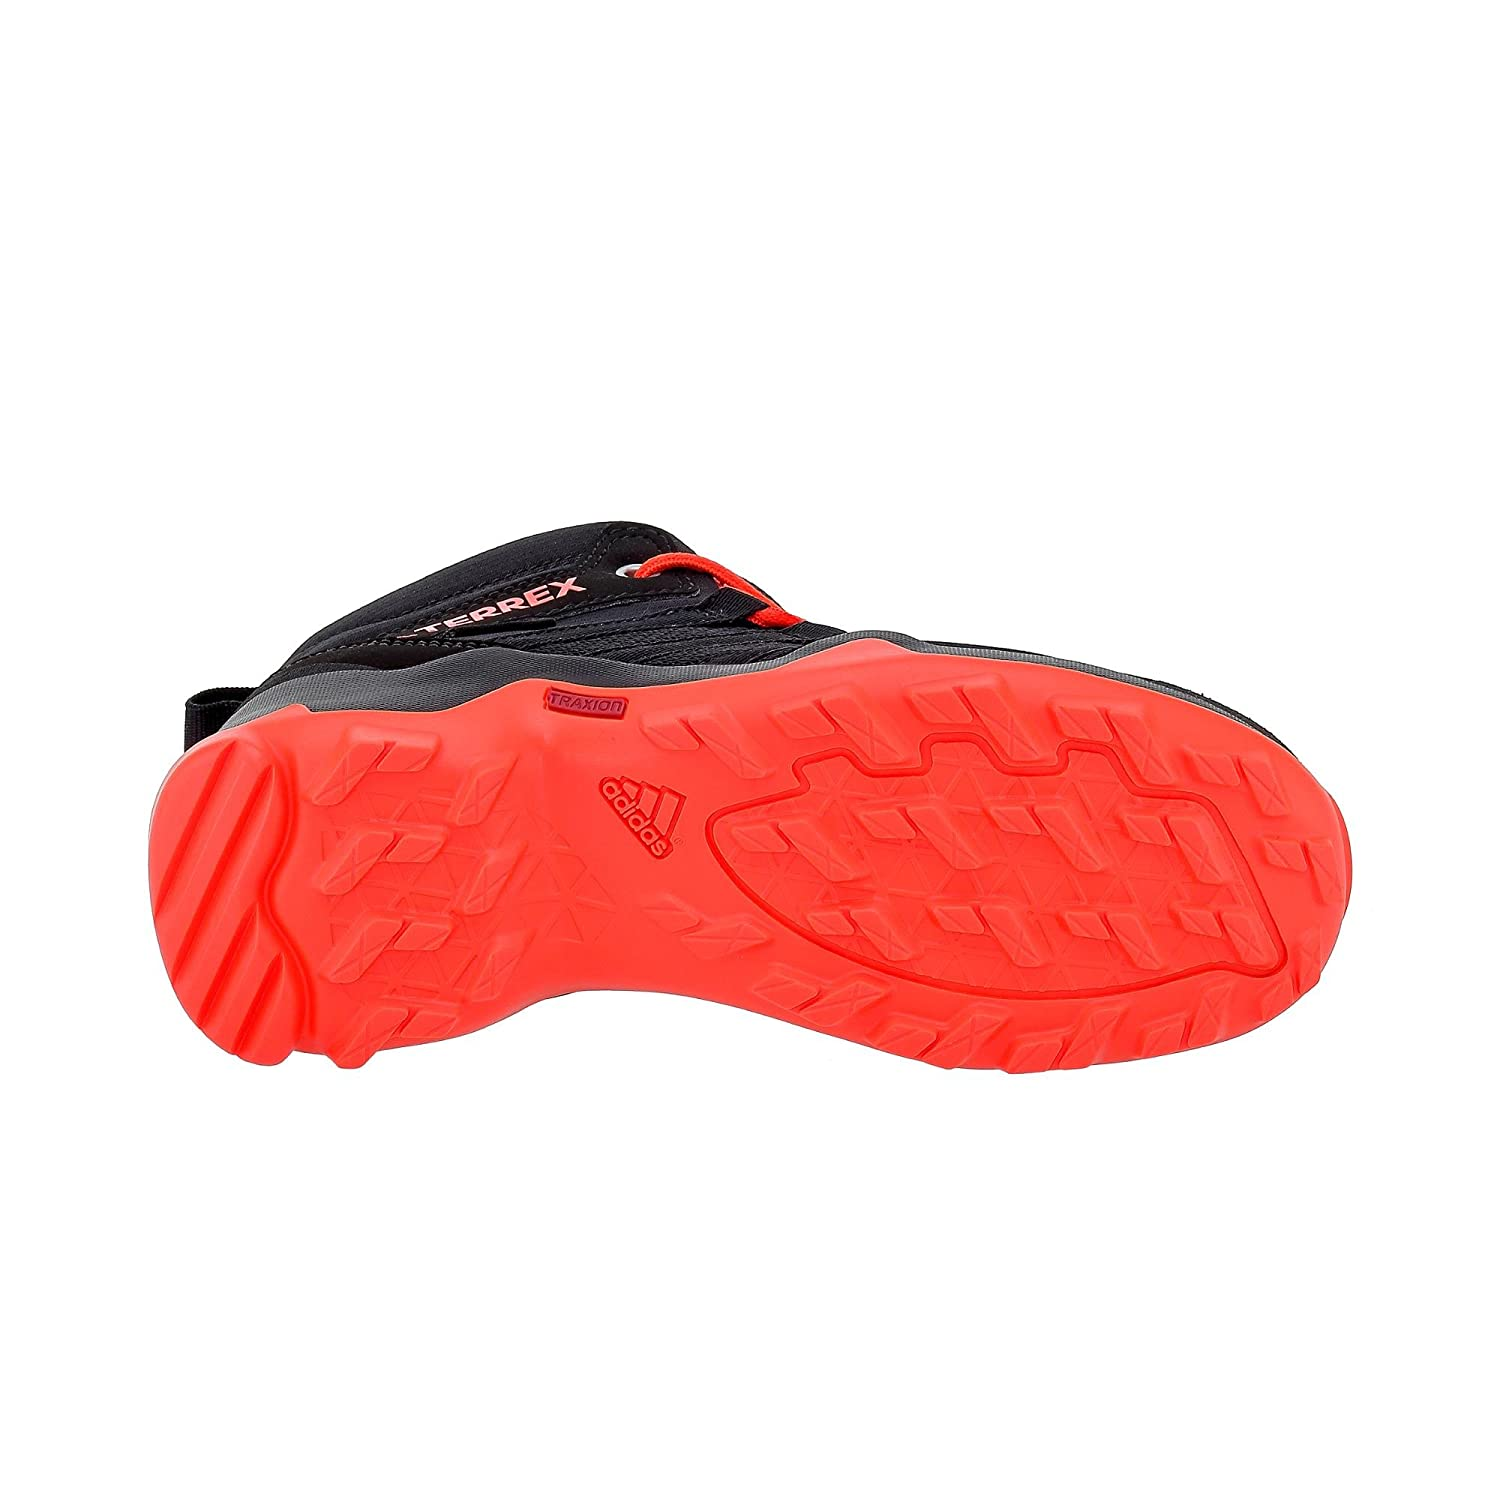 8e5bbb8a001cf Amazon.com: adidas - Terrex AX2R Mid CP Climaproof - CP9682: Shoes